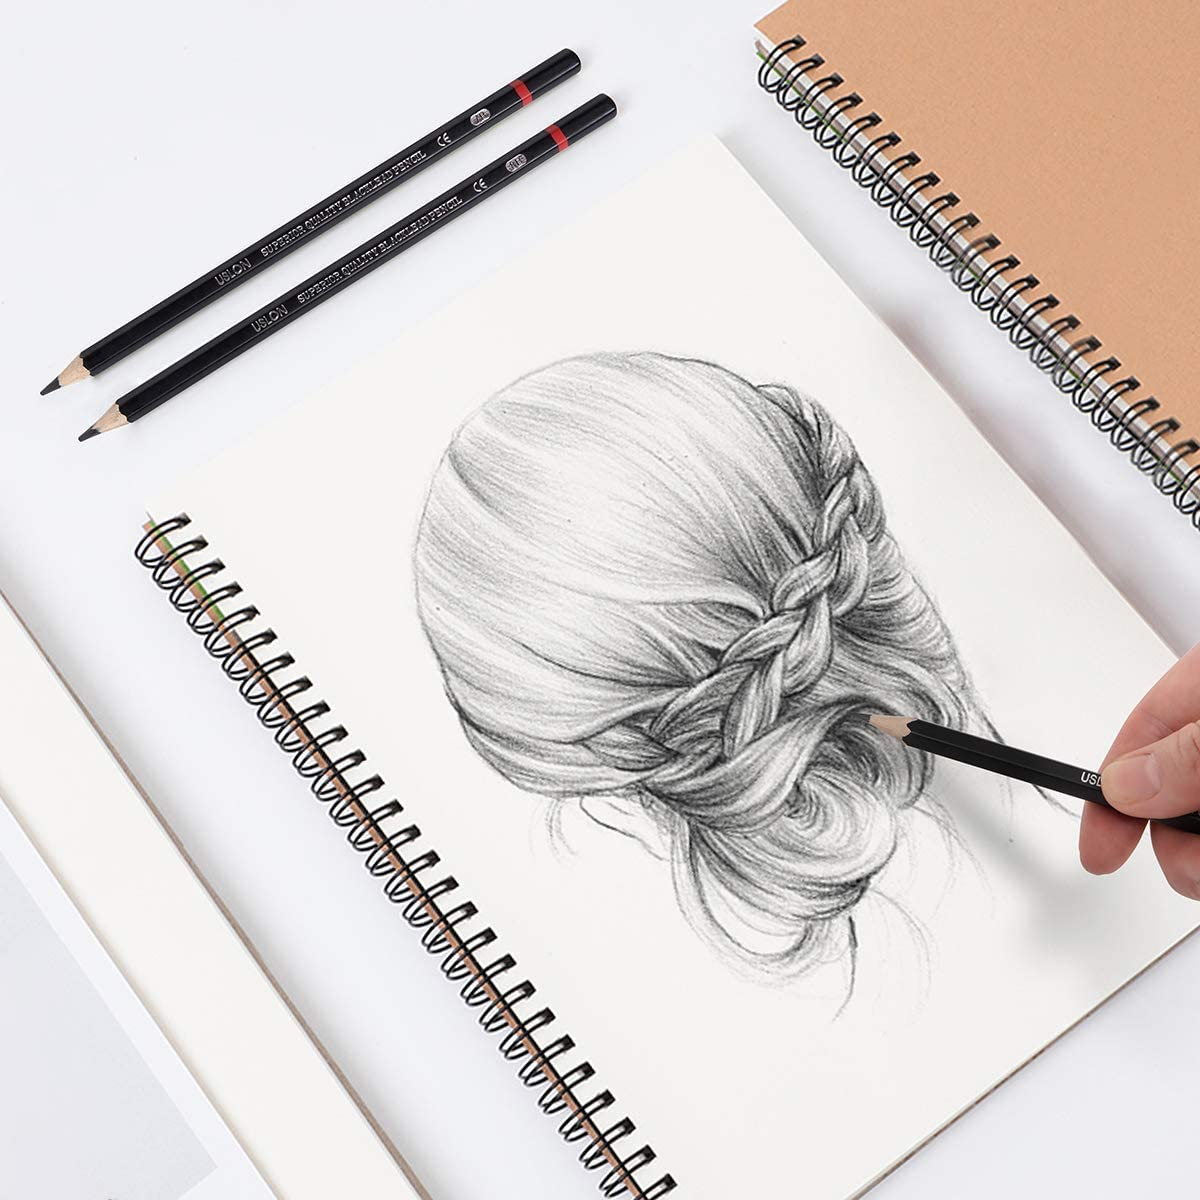 Professional Drawing Sketching Pencil Set   200 Pieces Art Drawing Graphite  Pencils200B   20H, Ideal for Drawing Art, Sketching, Shading, for Beginners  ...